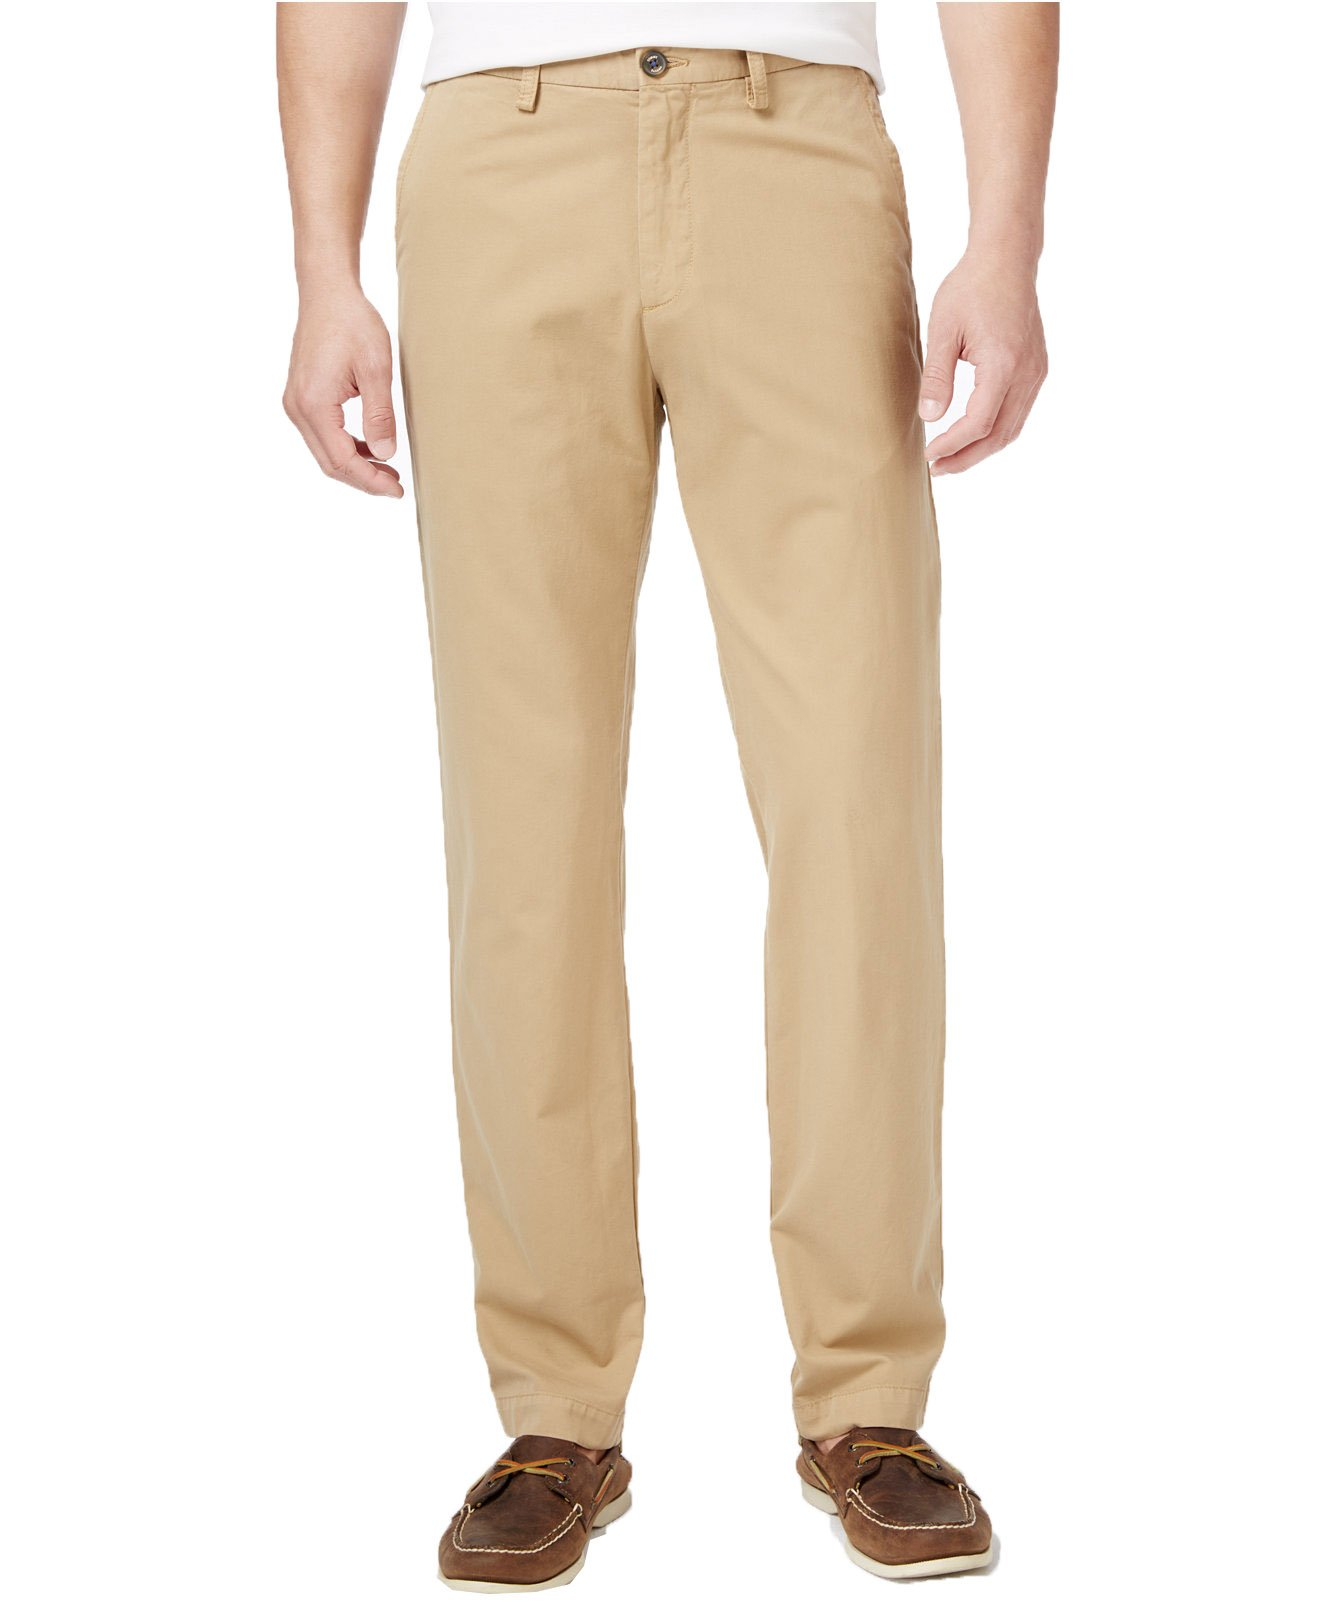 Tommy Bahama Men's Big and Tall Island Chinos (42W x 32L, Tanned) by Tommy Bahama (Image #1)